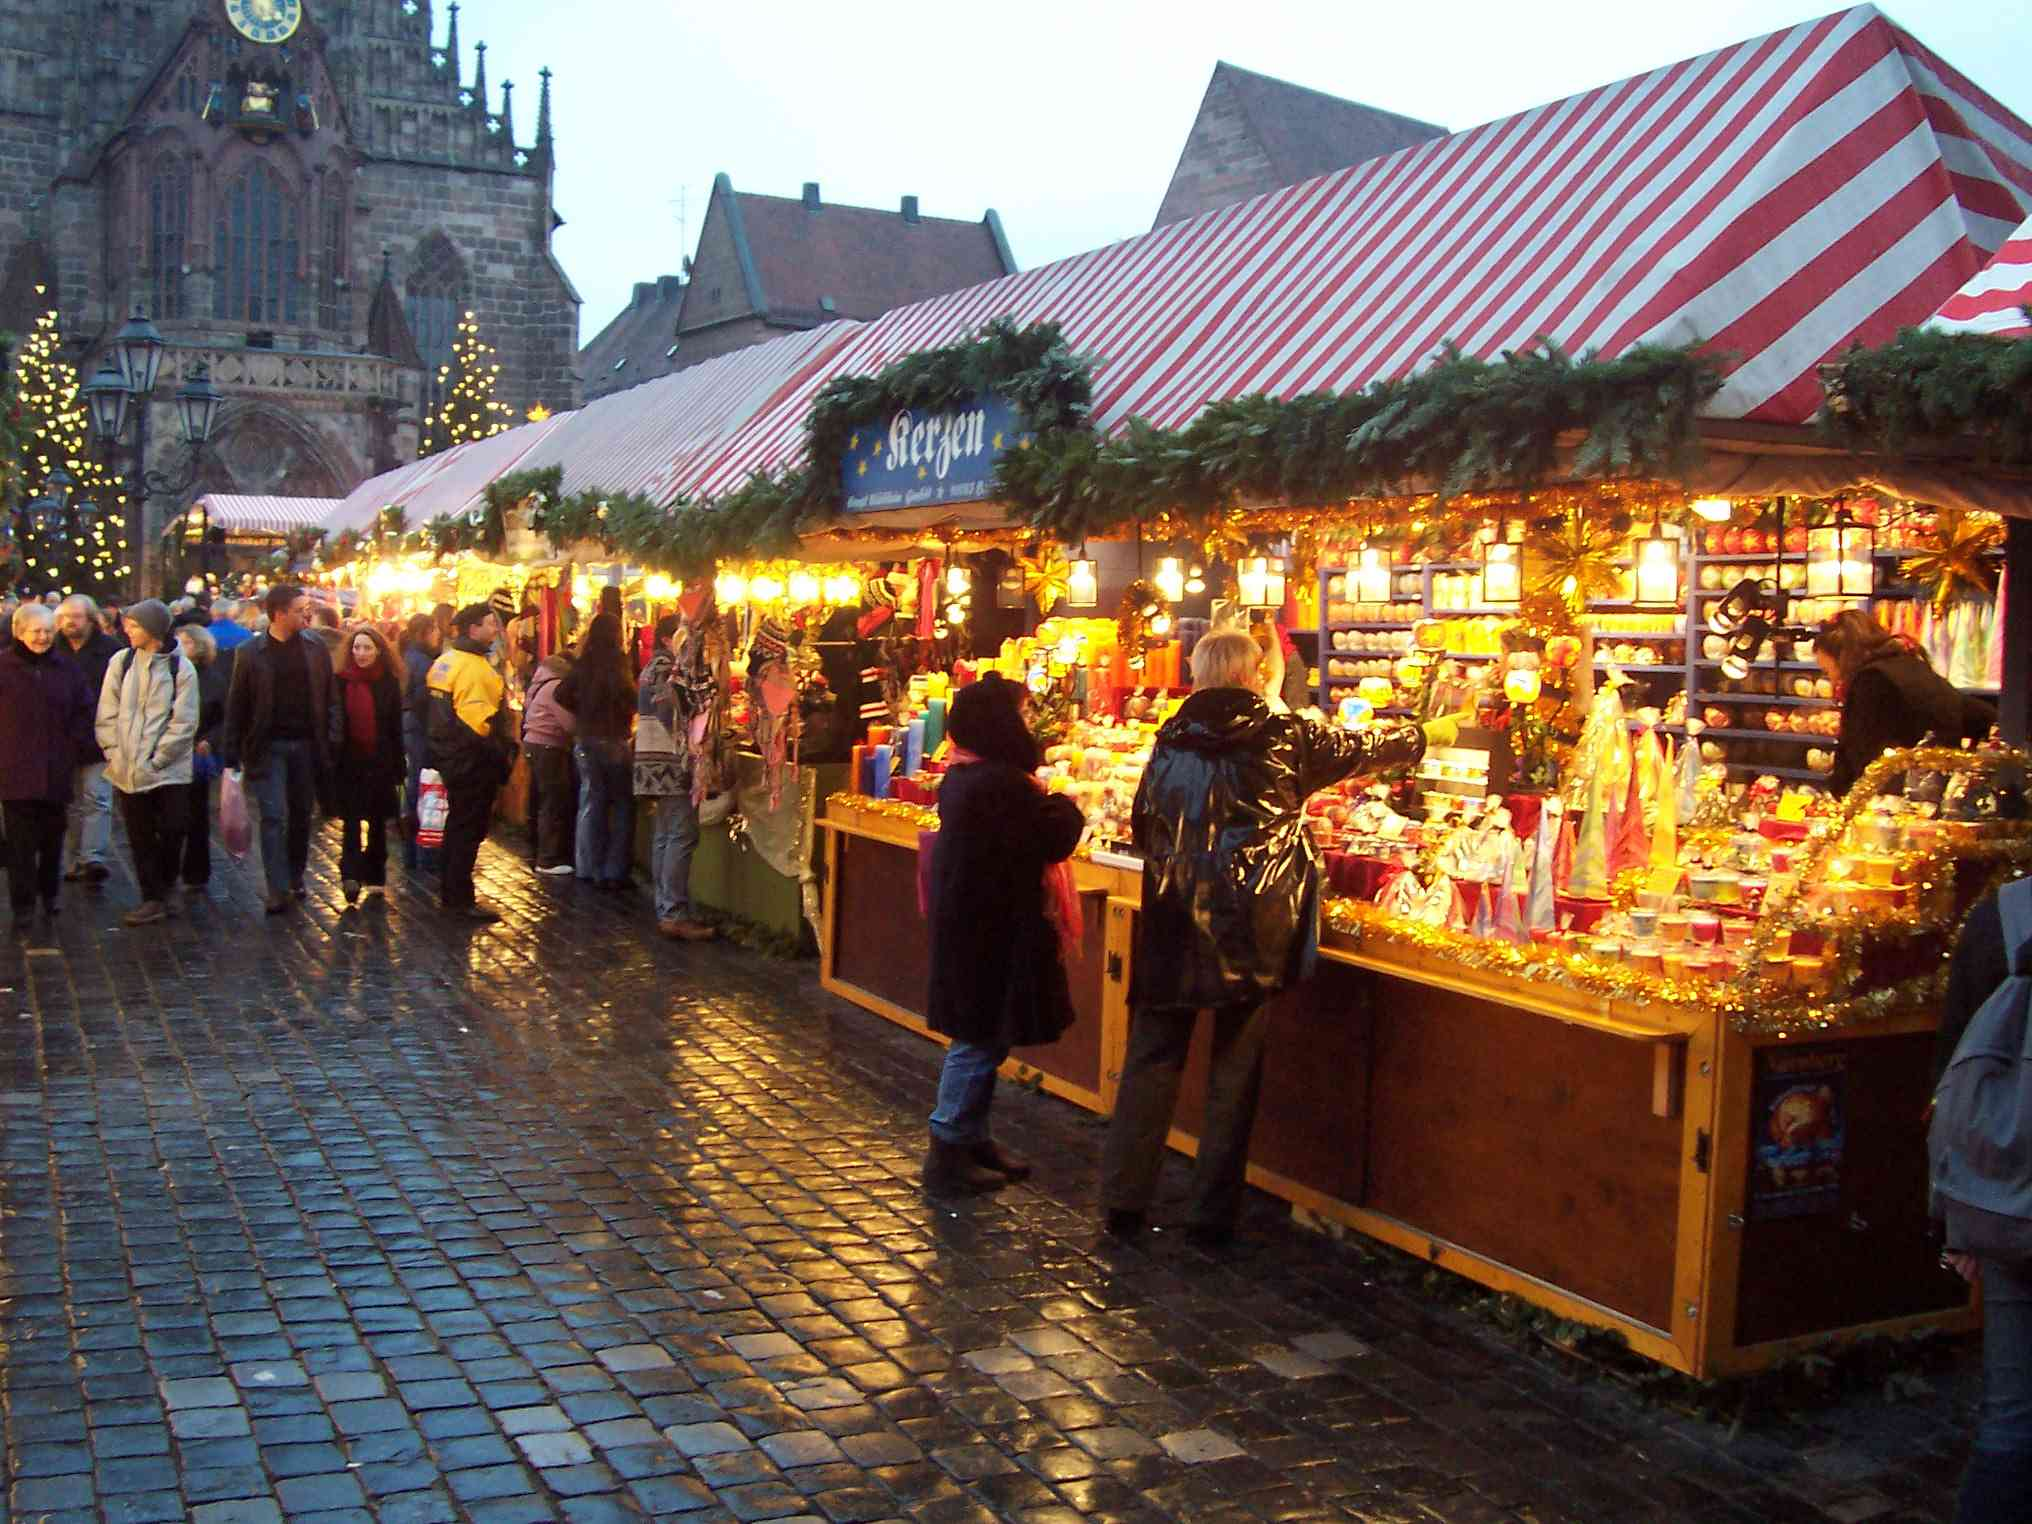 Choosing exactly what to buy at the Christmas Market in Nuremburg is rather tricky - there's so much choice.